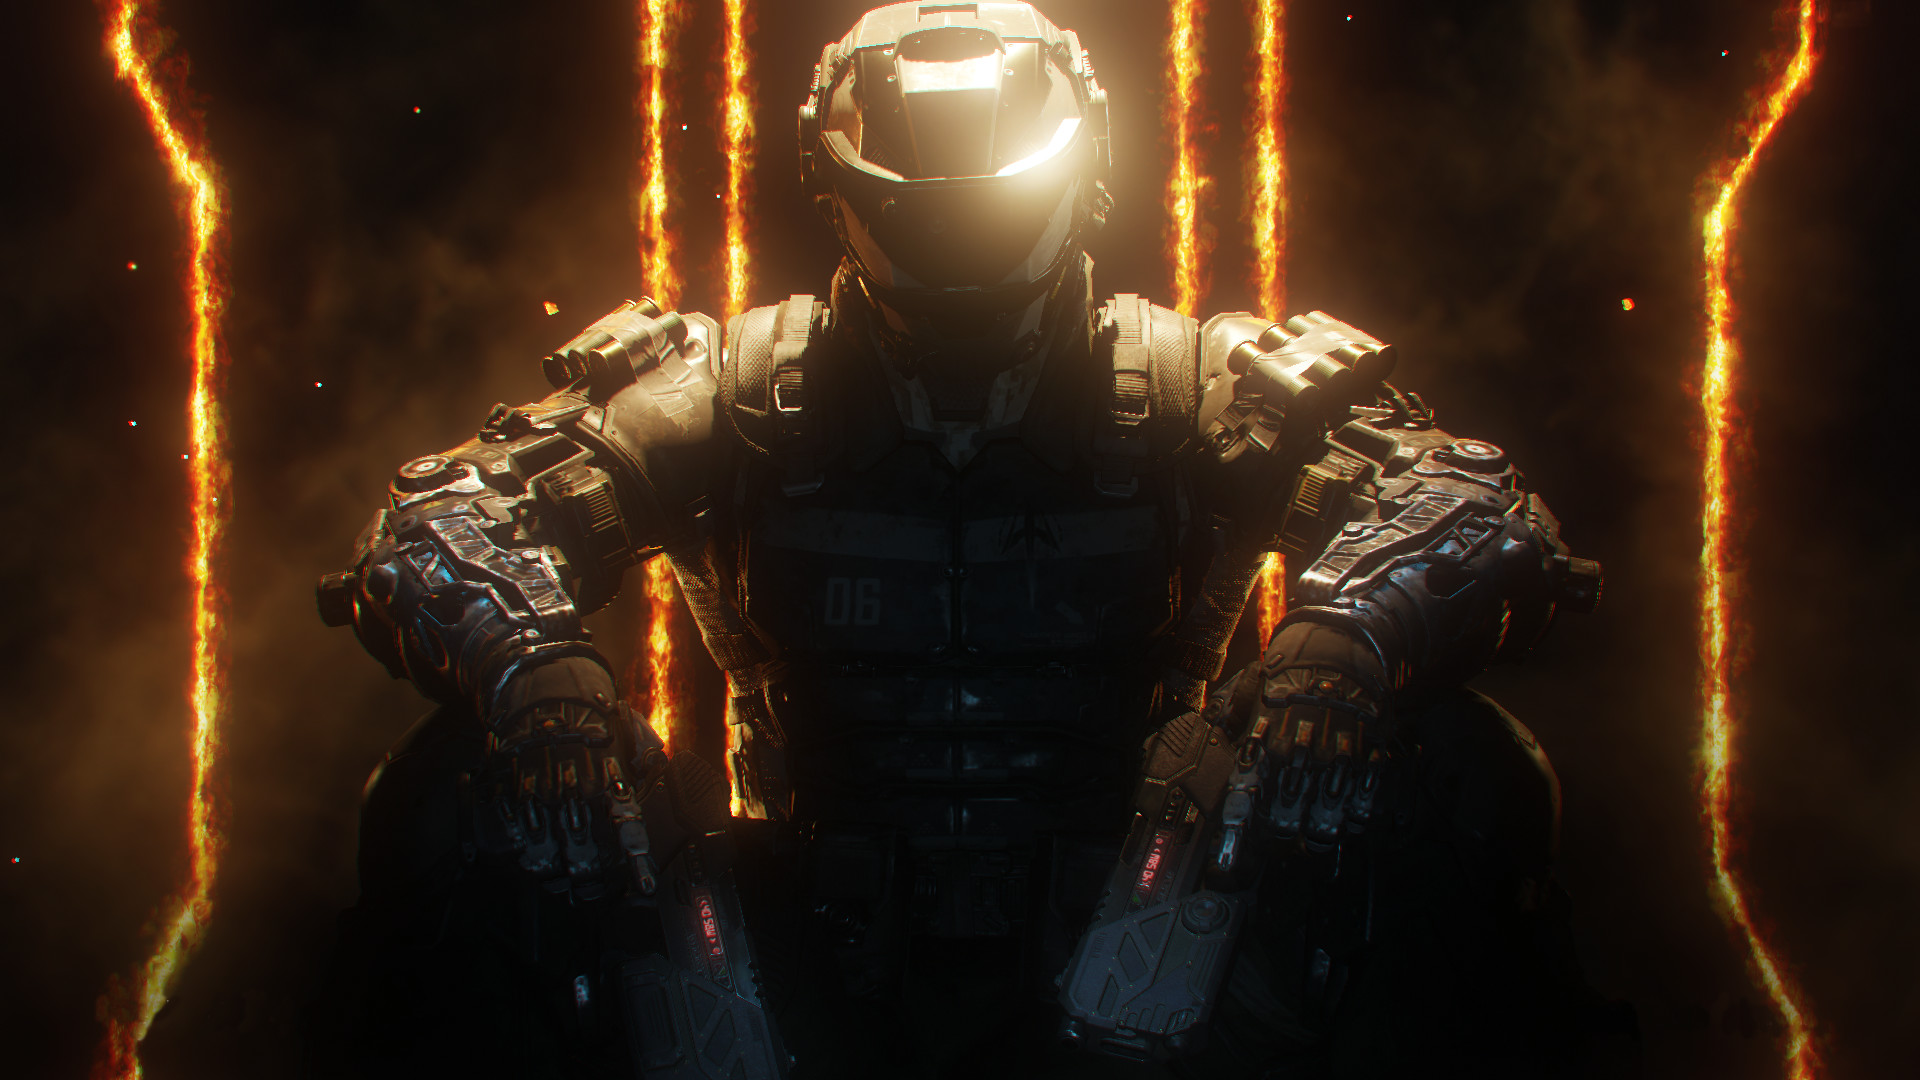 Users who found this page were searching for: badass 4k wallpaper